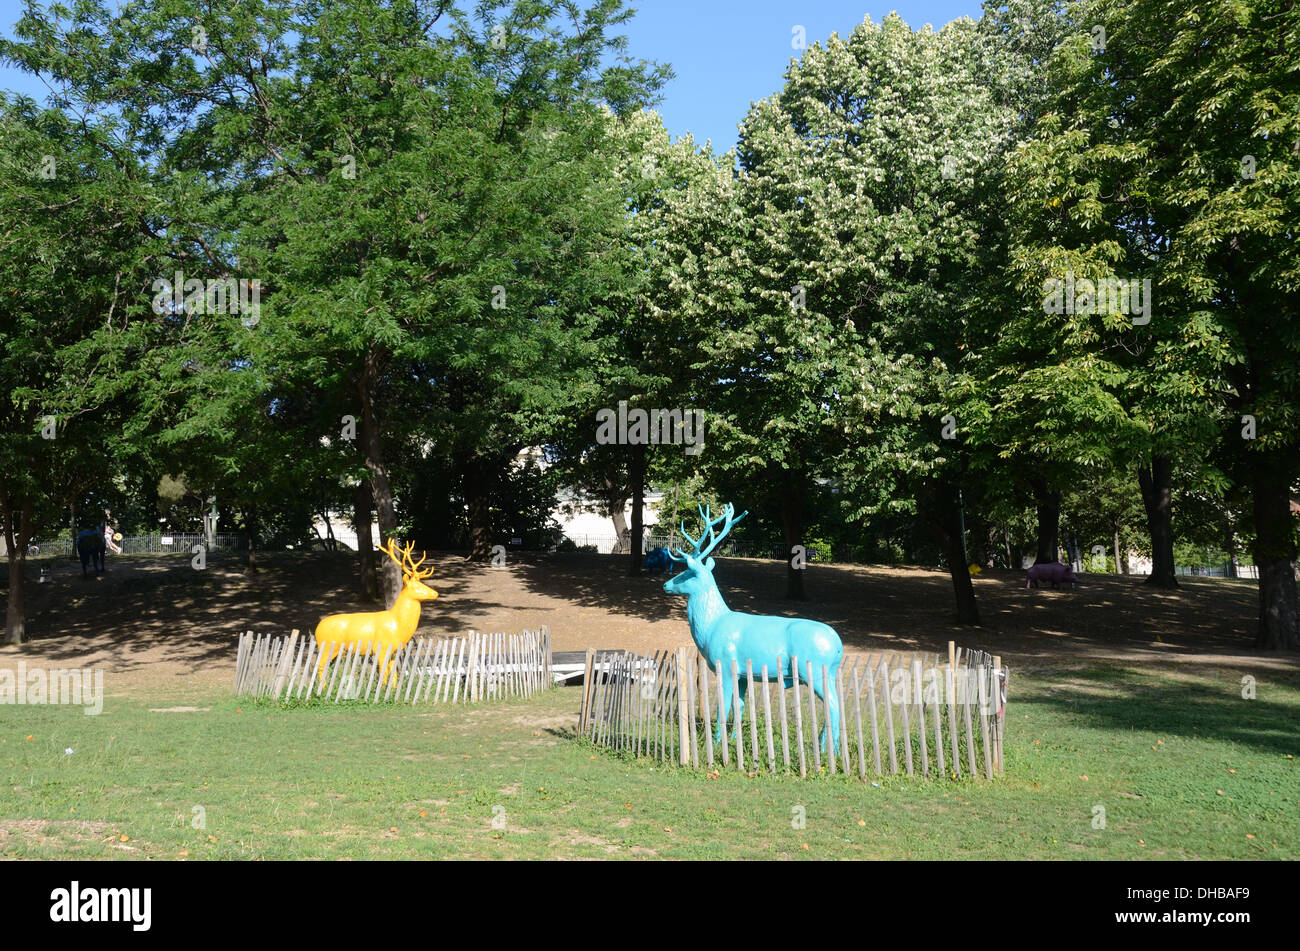 Fenced in Plastic Resin Deer at Marseille Funny Zoo France - Stock Image